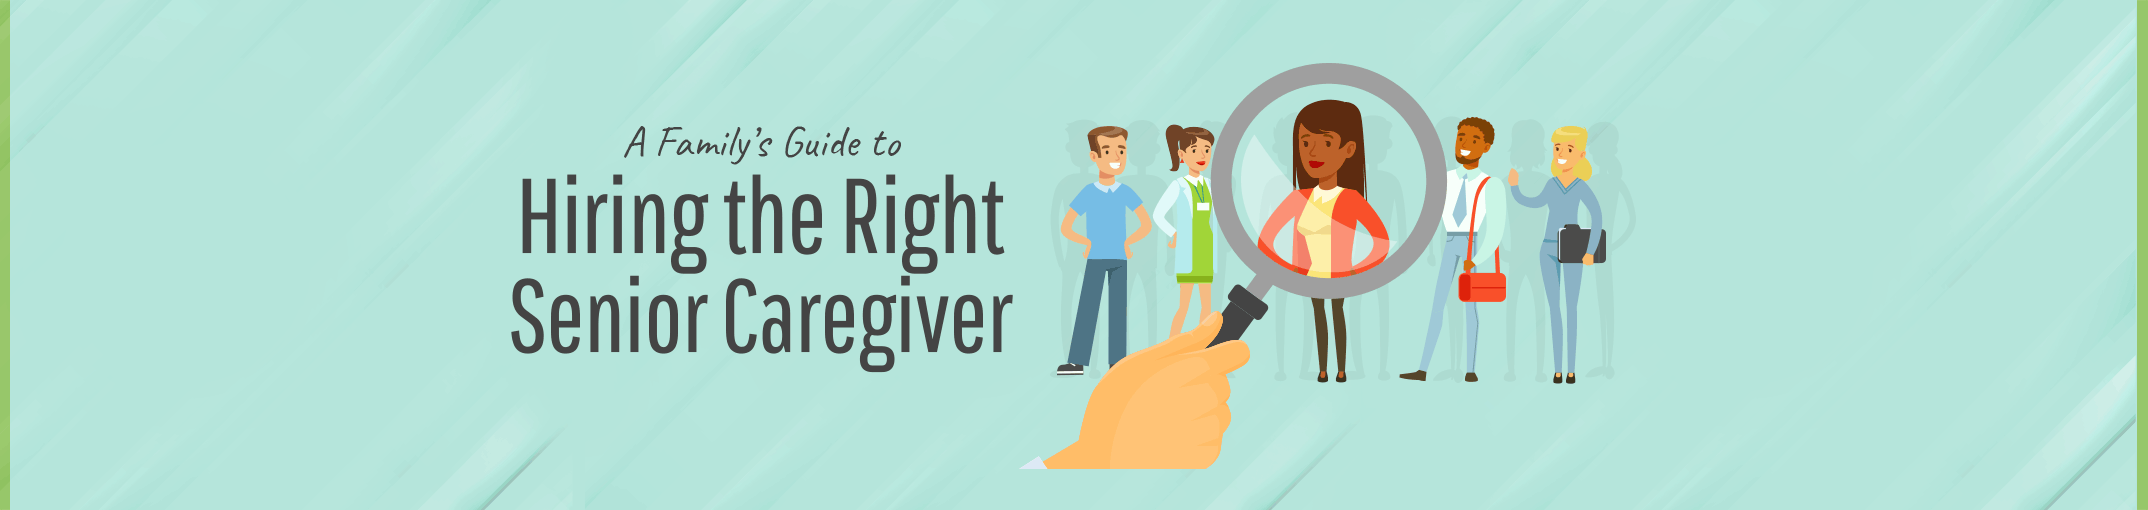 A Family's Guide to Hiring the Right Senior Caregiver